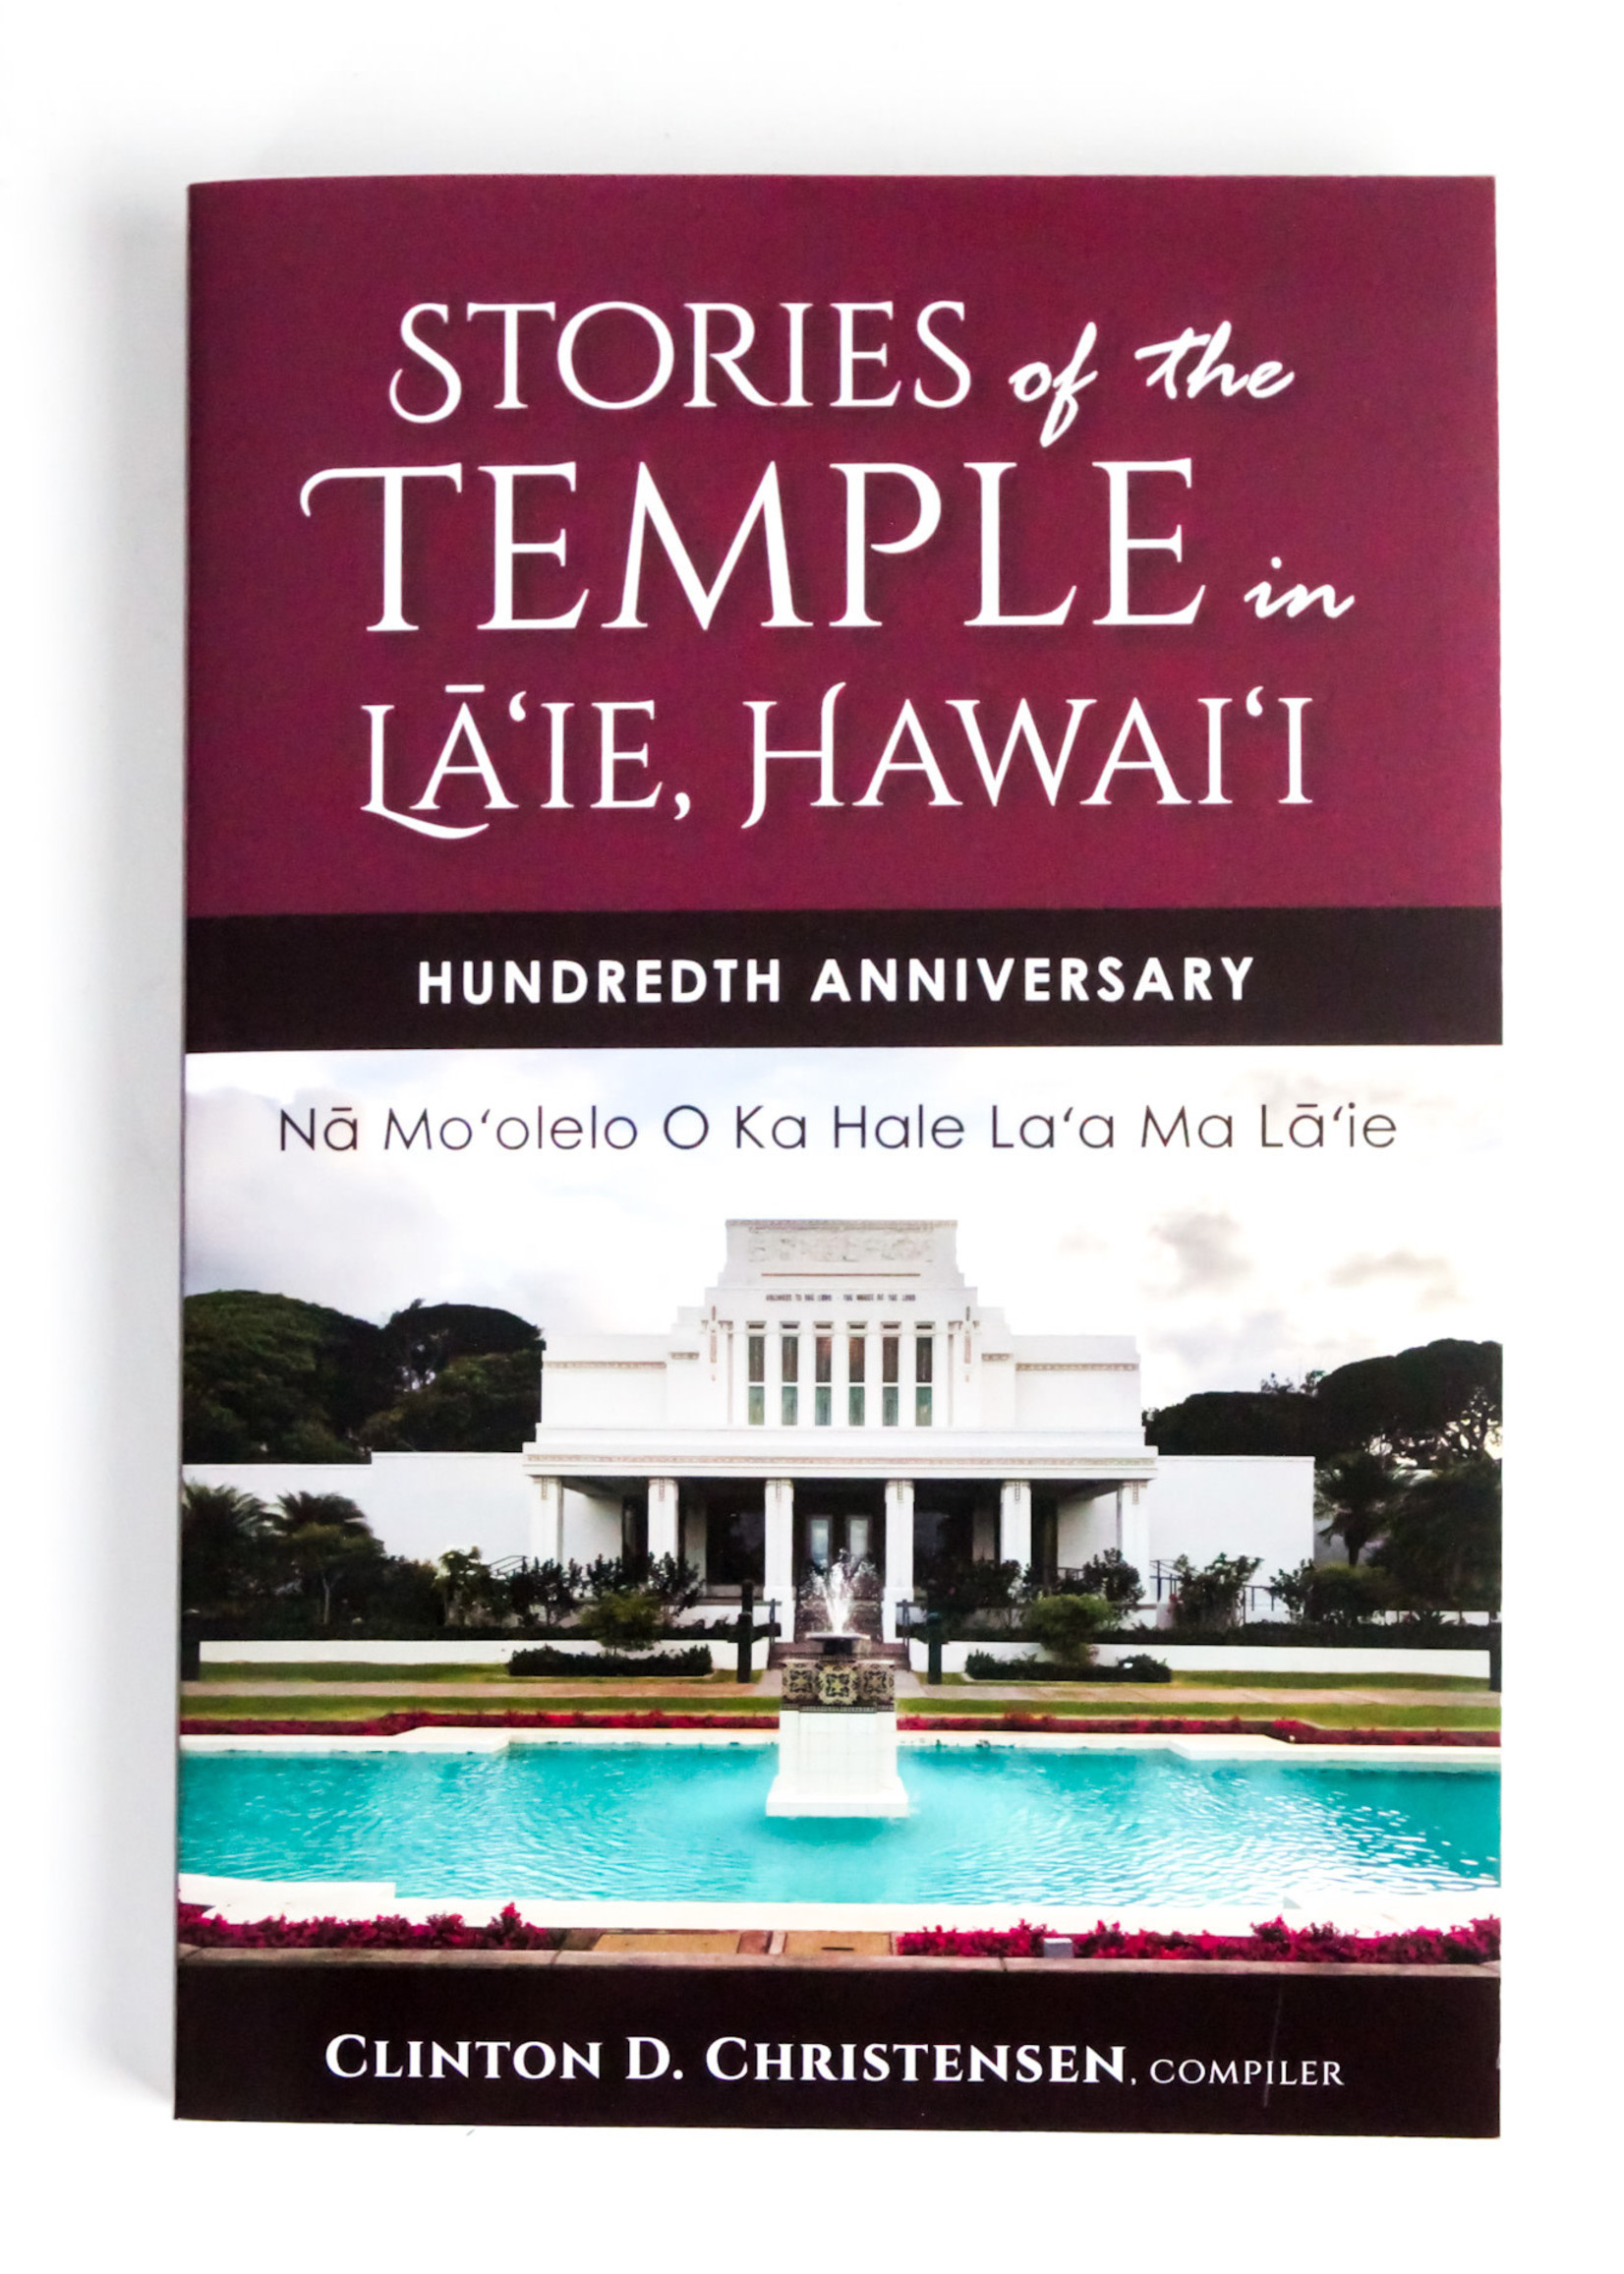 Stories of the Temple in Hawaii by Clinton D. Christensen